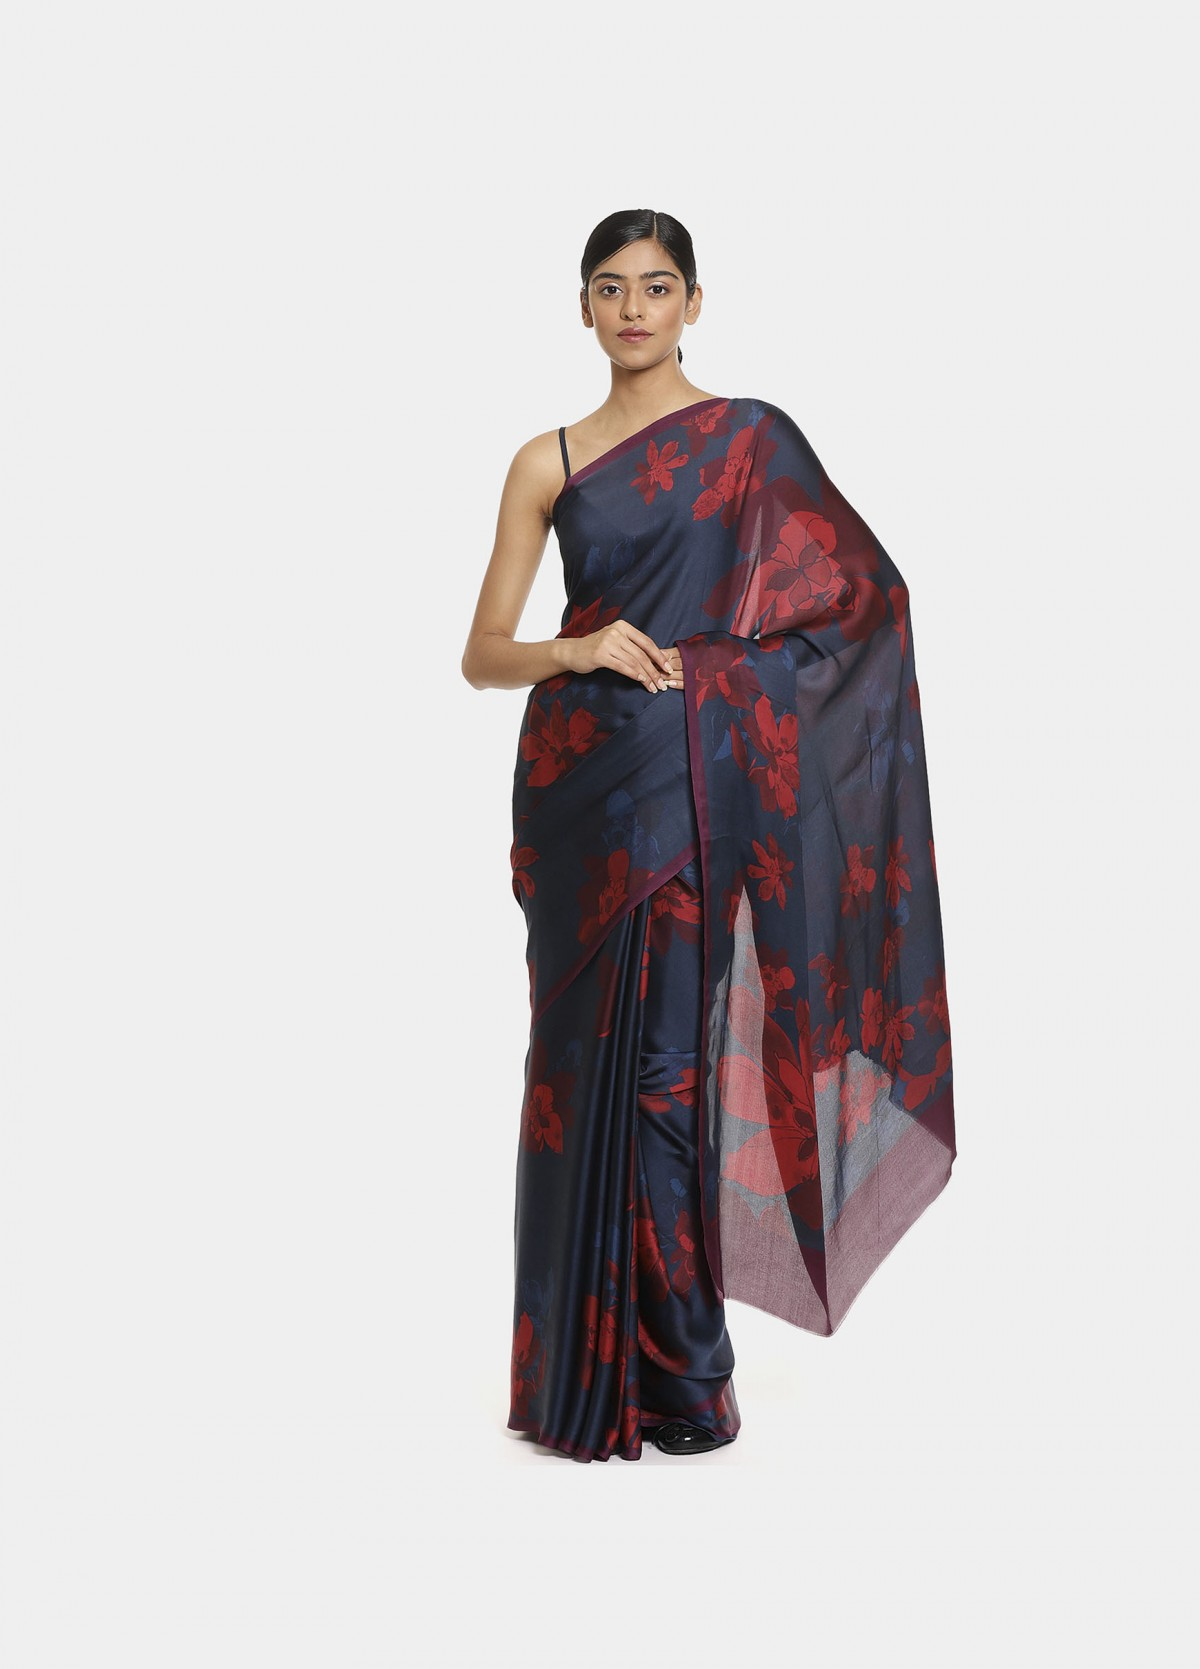 The Floral Trail Collection Sari